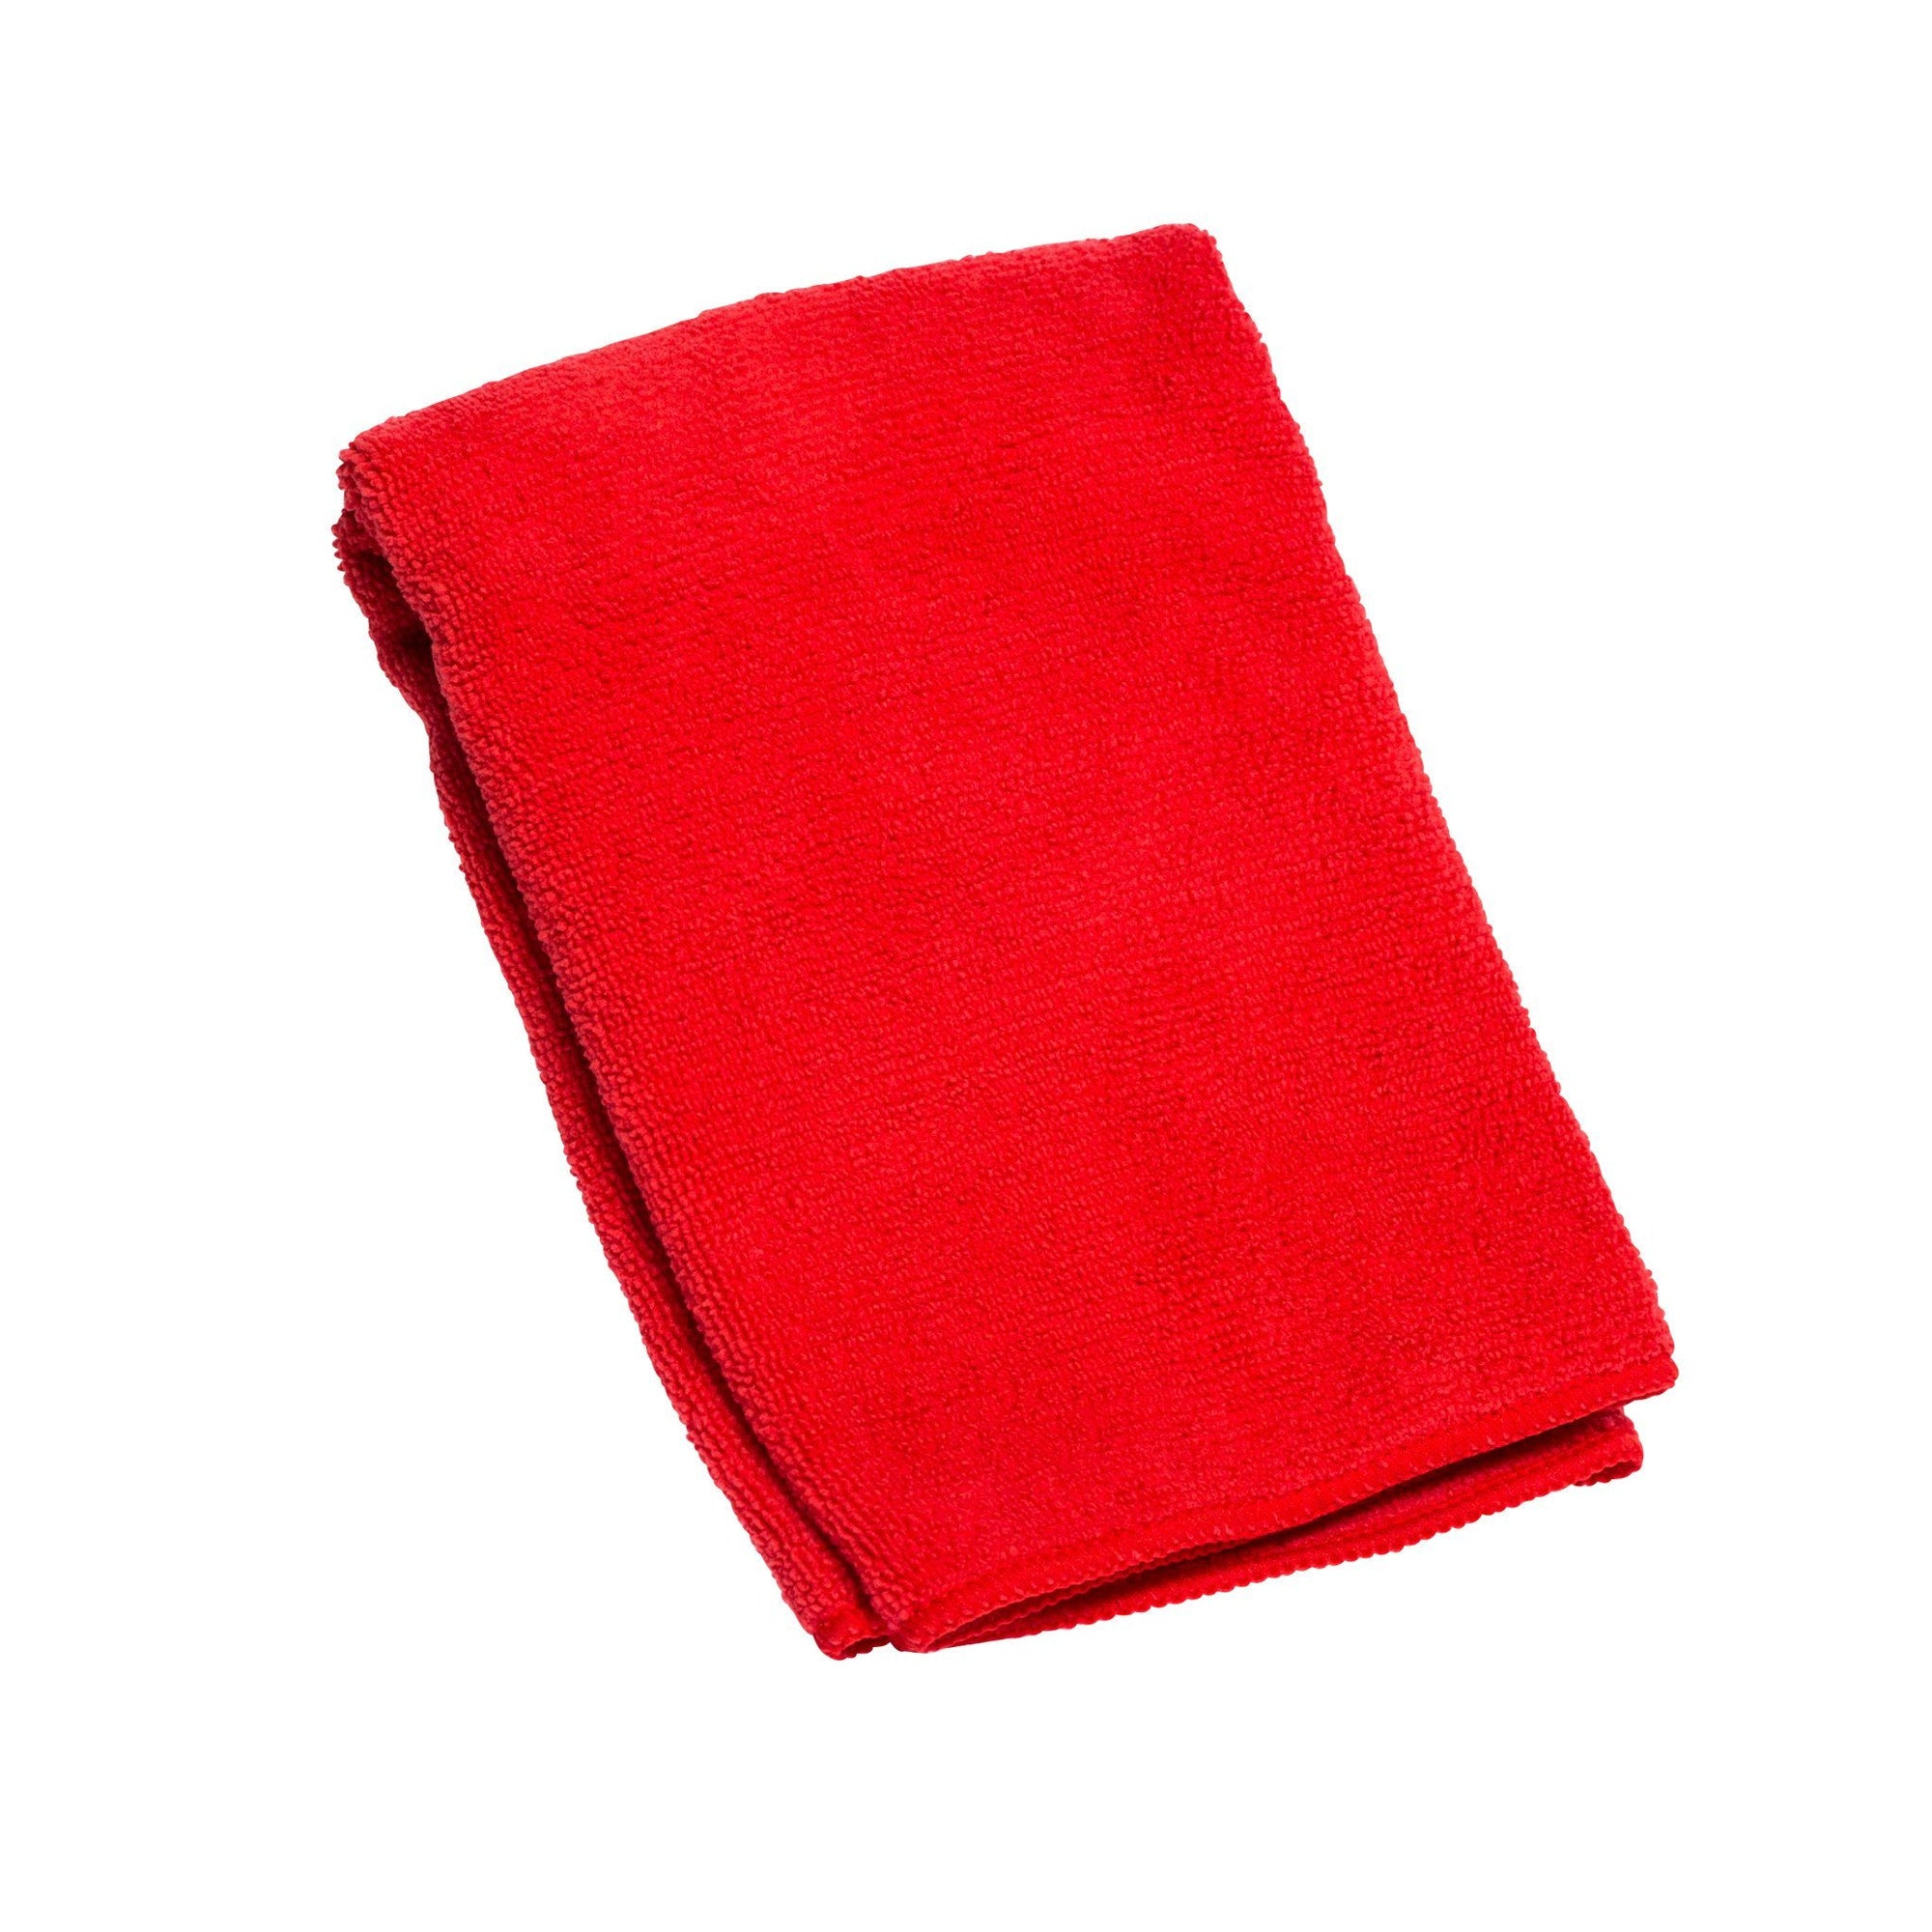 UCC Hybrid Detailing Towel Red (9546374669)